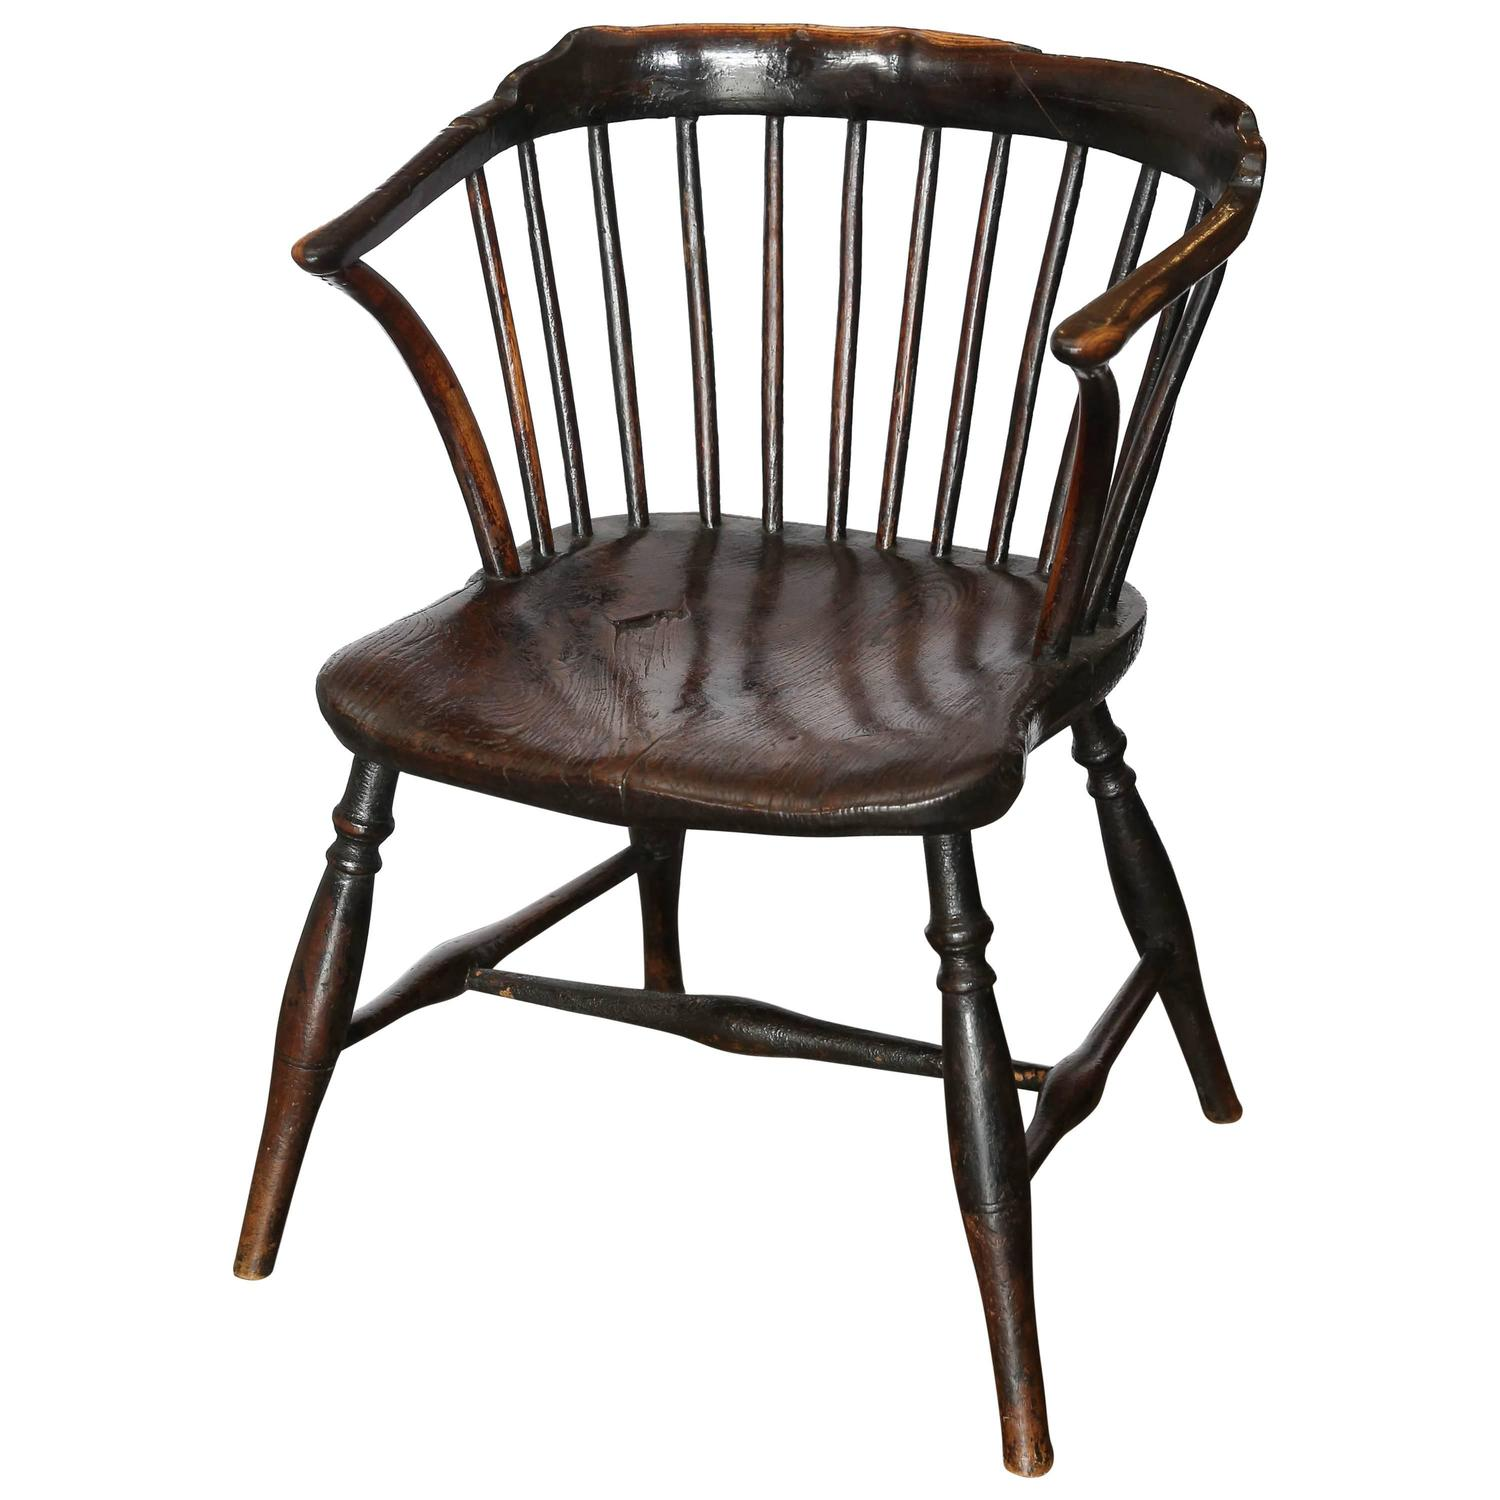 antique windsor chair identification wooden desk chairs without wheels 19th century for sale at 1stdibs